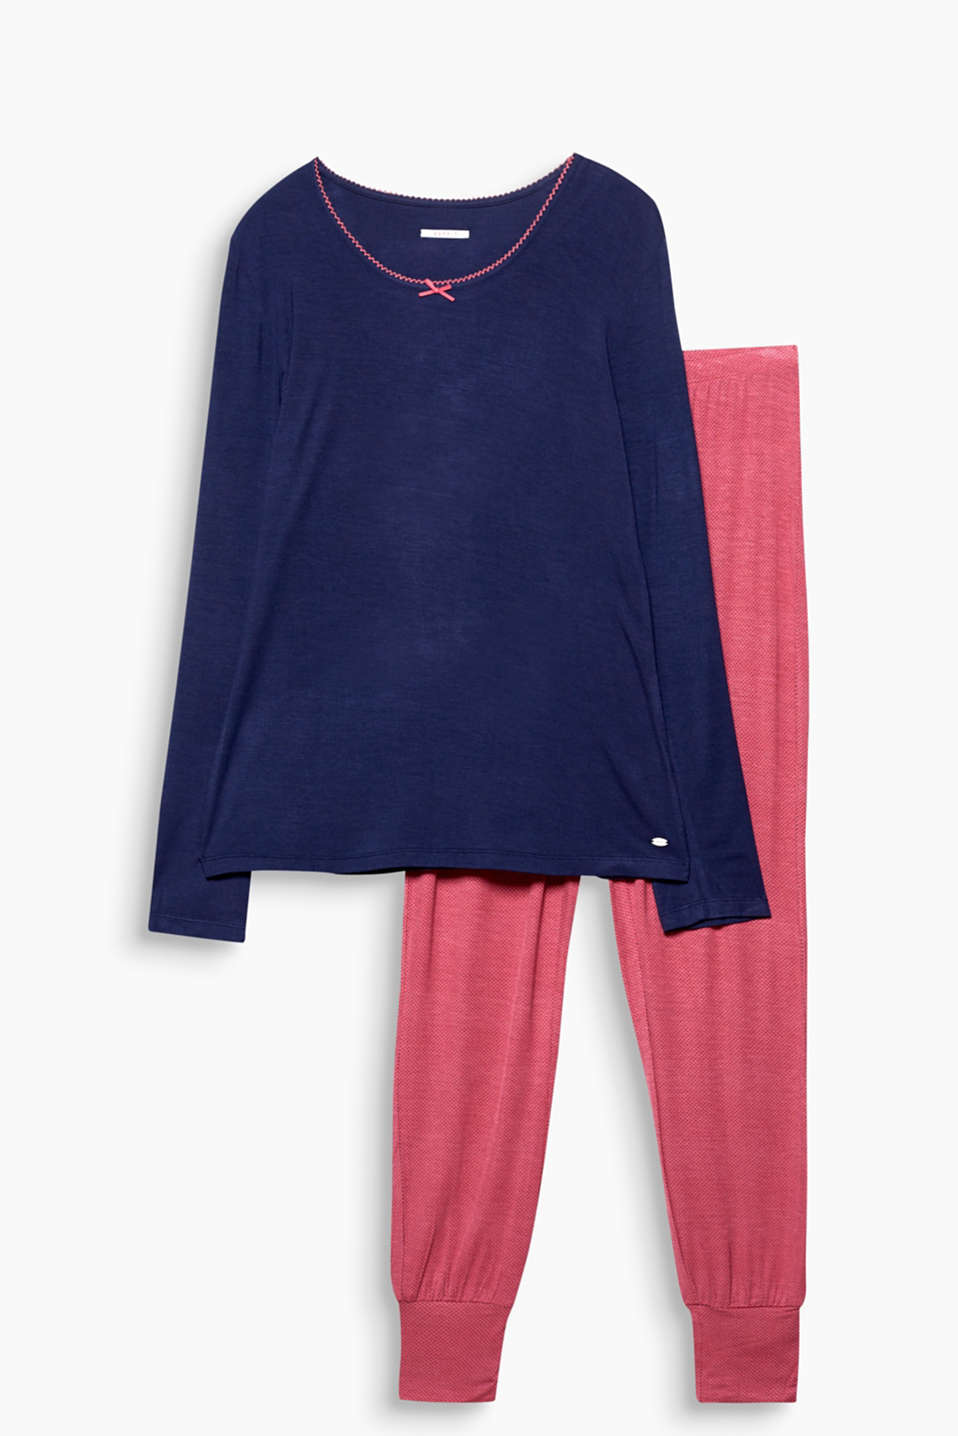 Feminine and flowing – jersey pyjamas with plain long sleeve top and polka dot bottoms will have you feeling great!